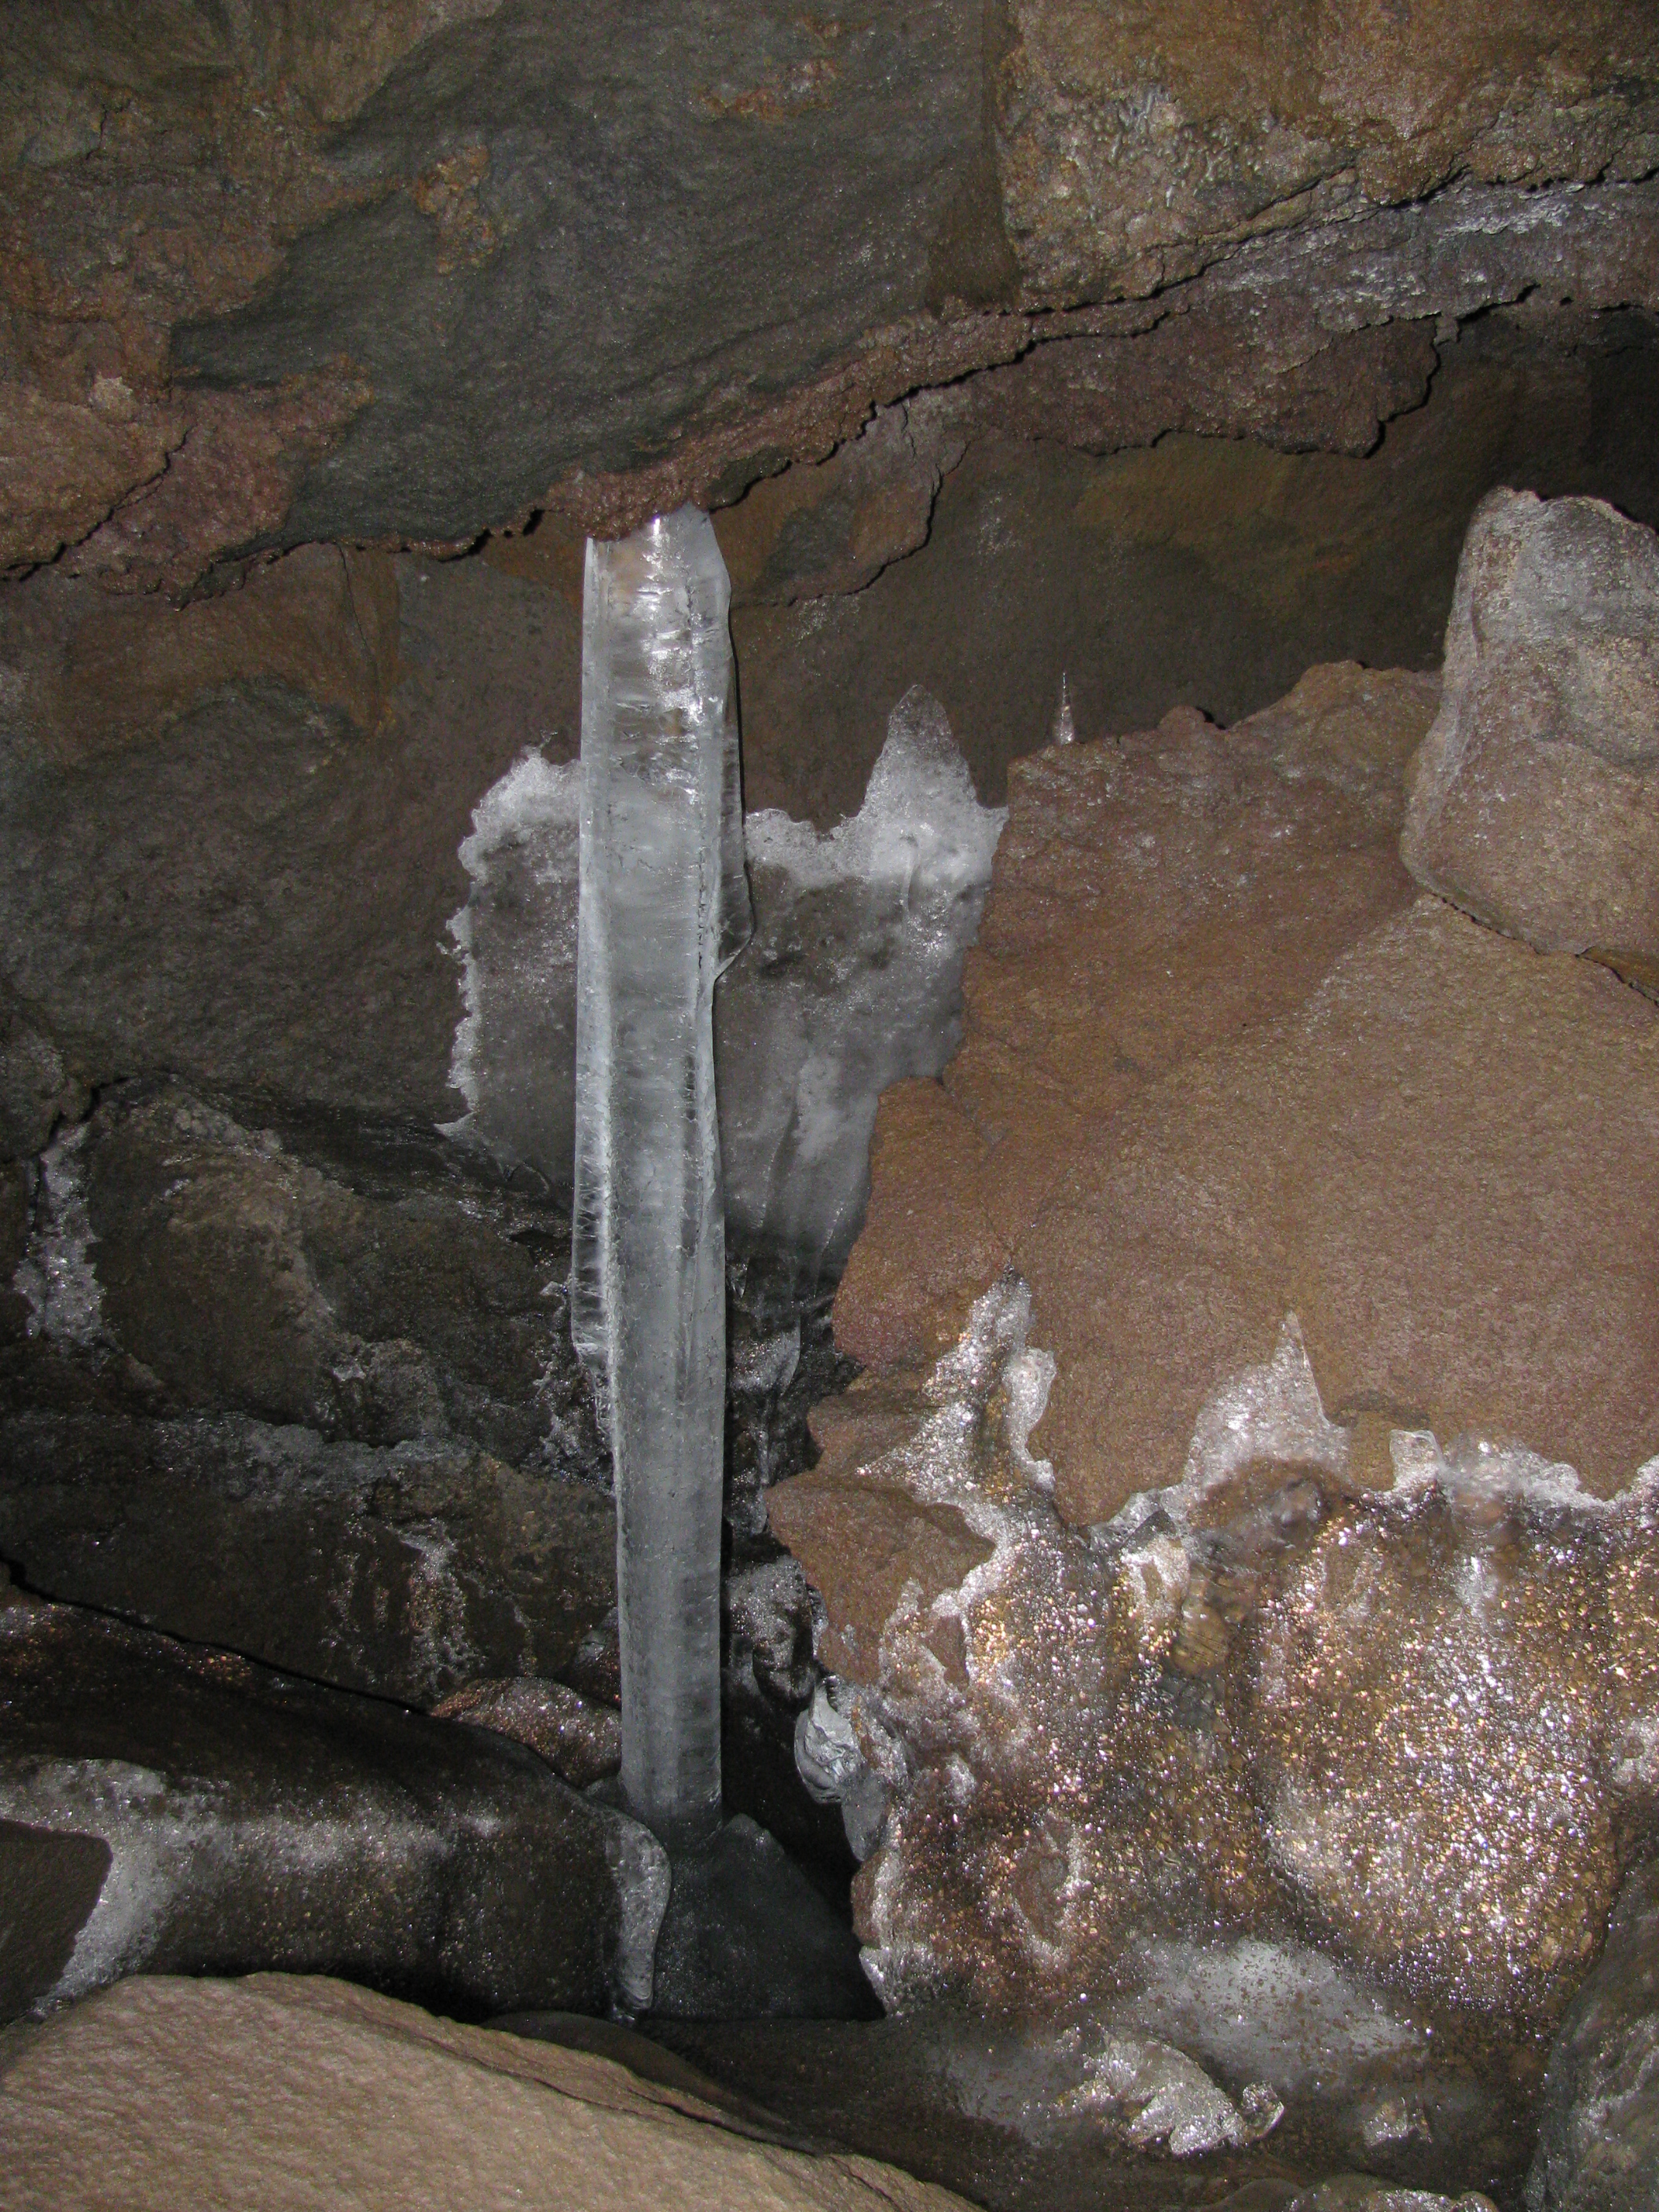 Ice Pillar formed in the Ice Cave